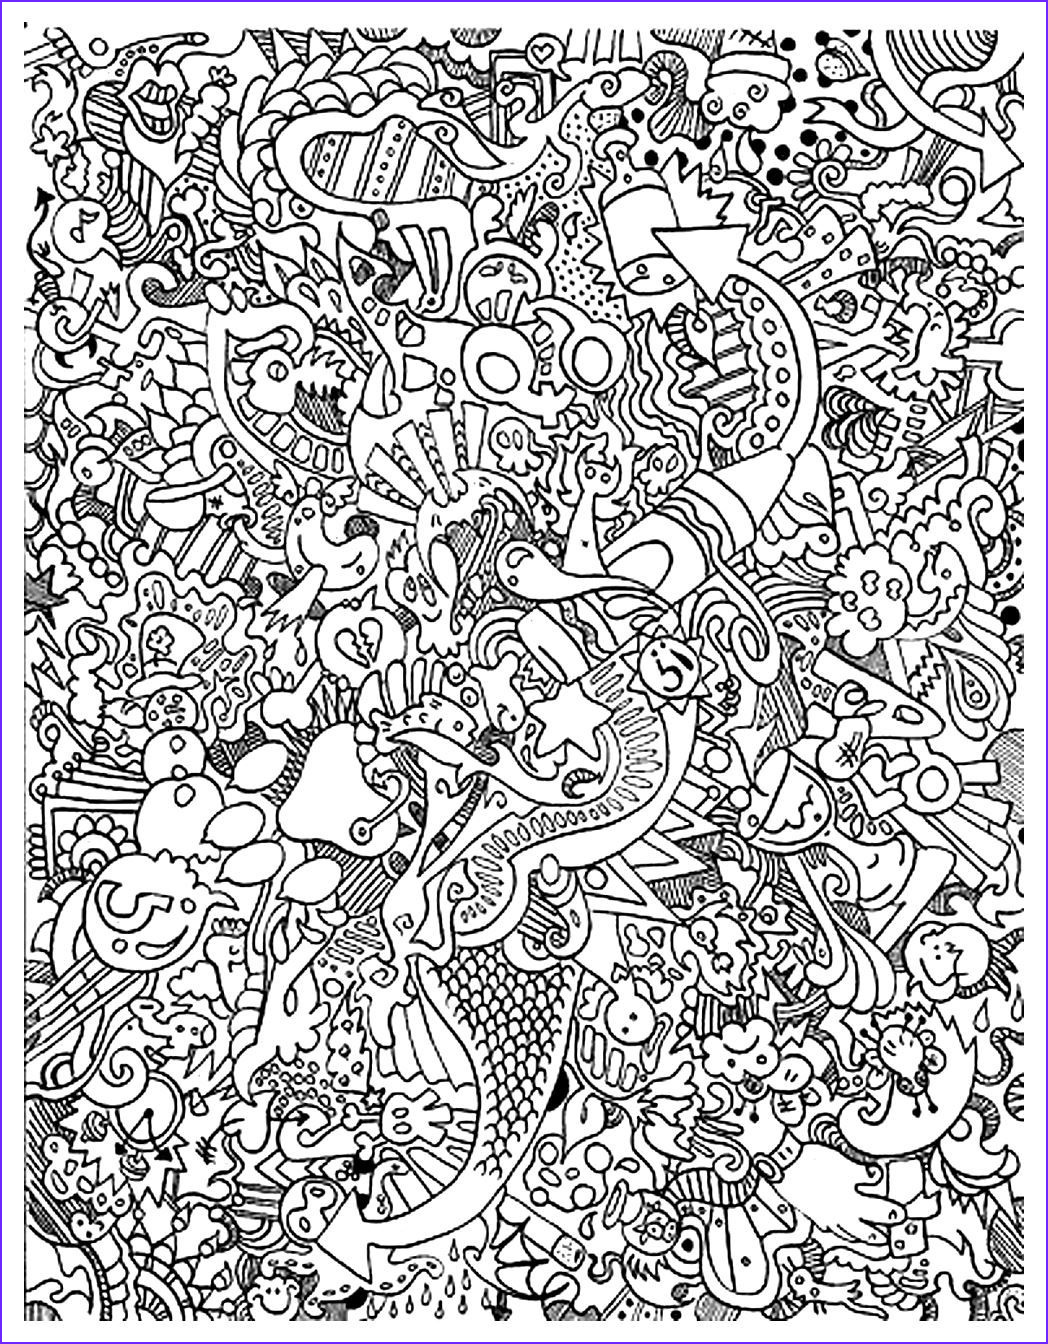 Giant Coloring Books for Adults Beautiful Photos to Print This Free Coloring Page Coloring Adult Big Mess